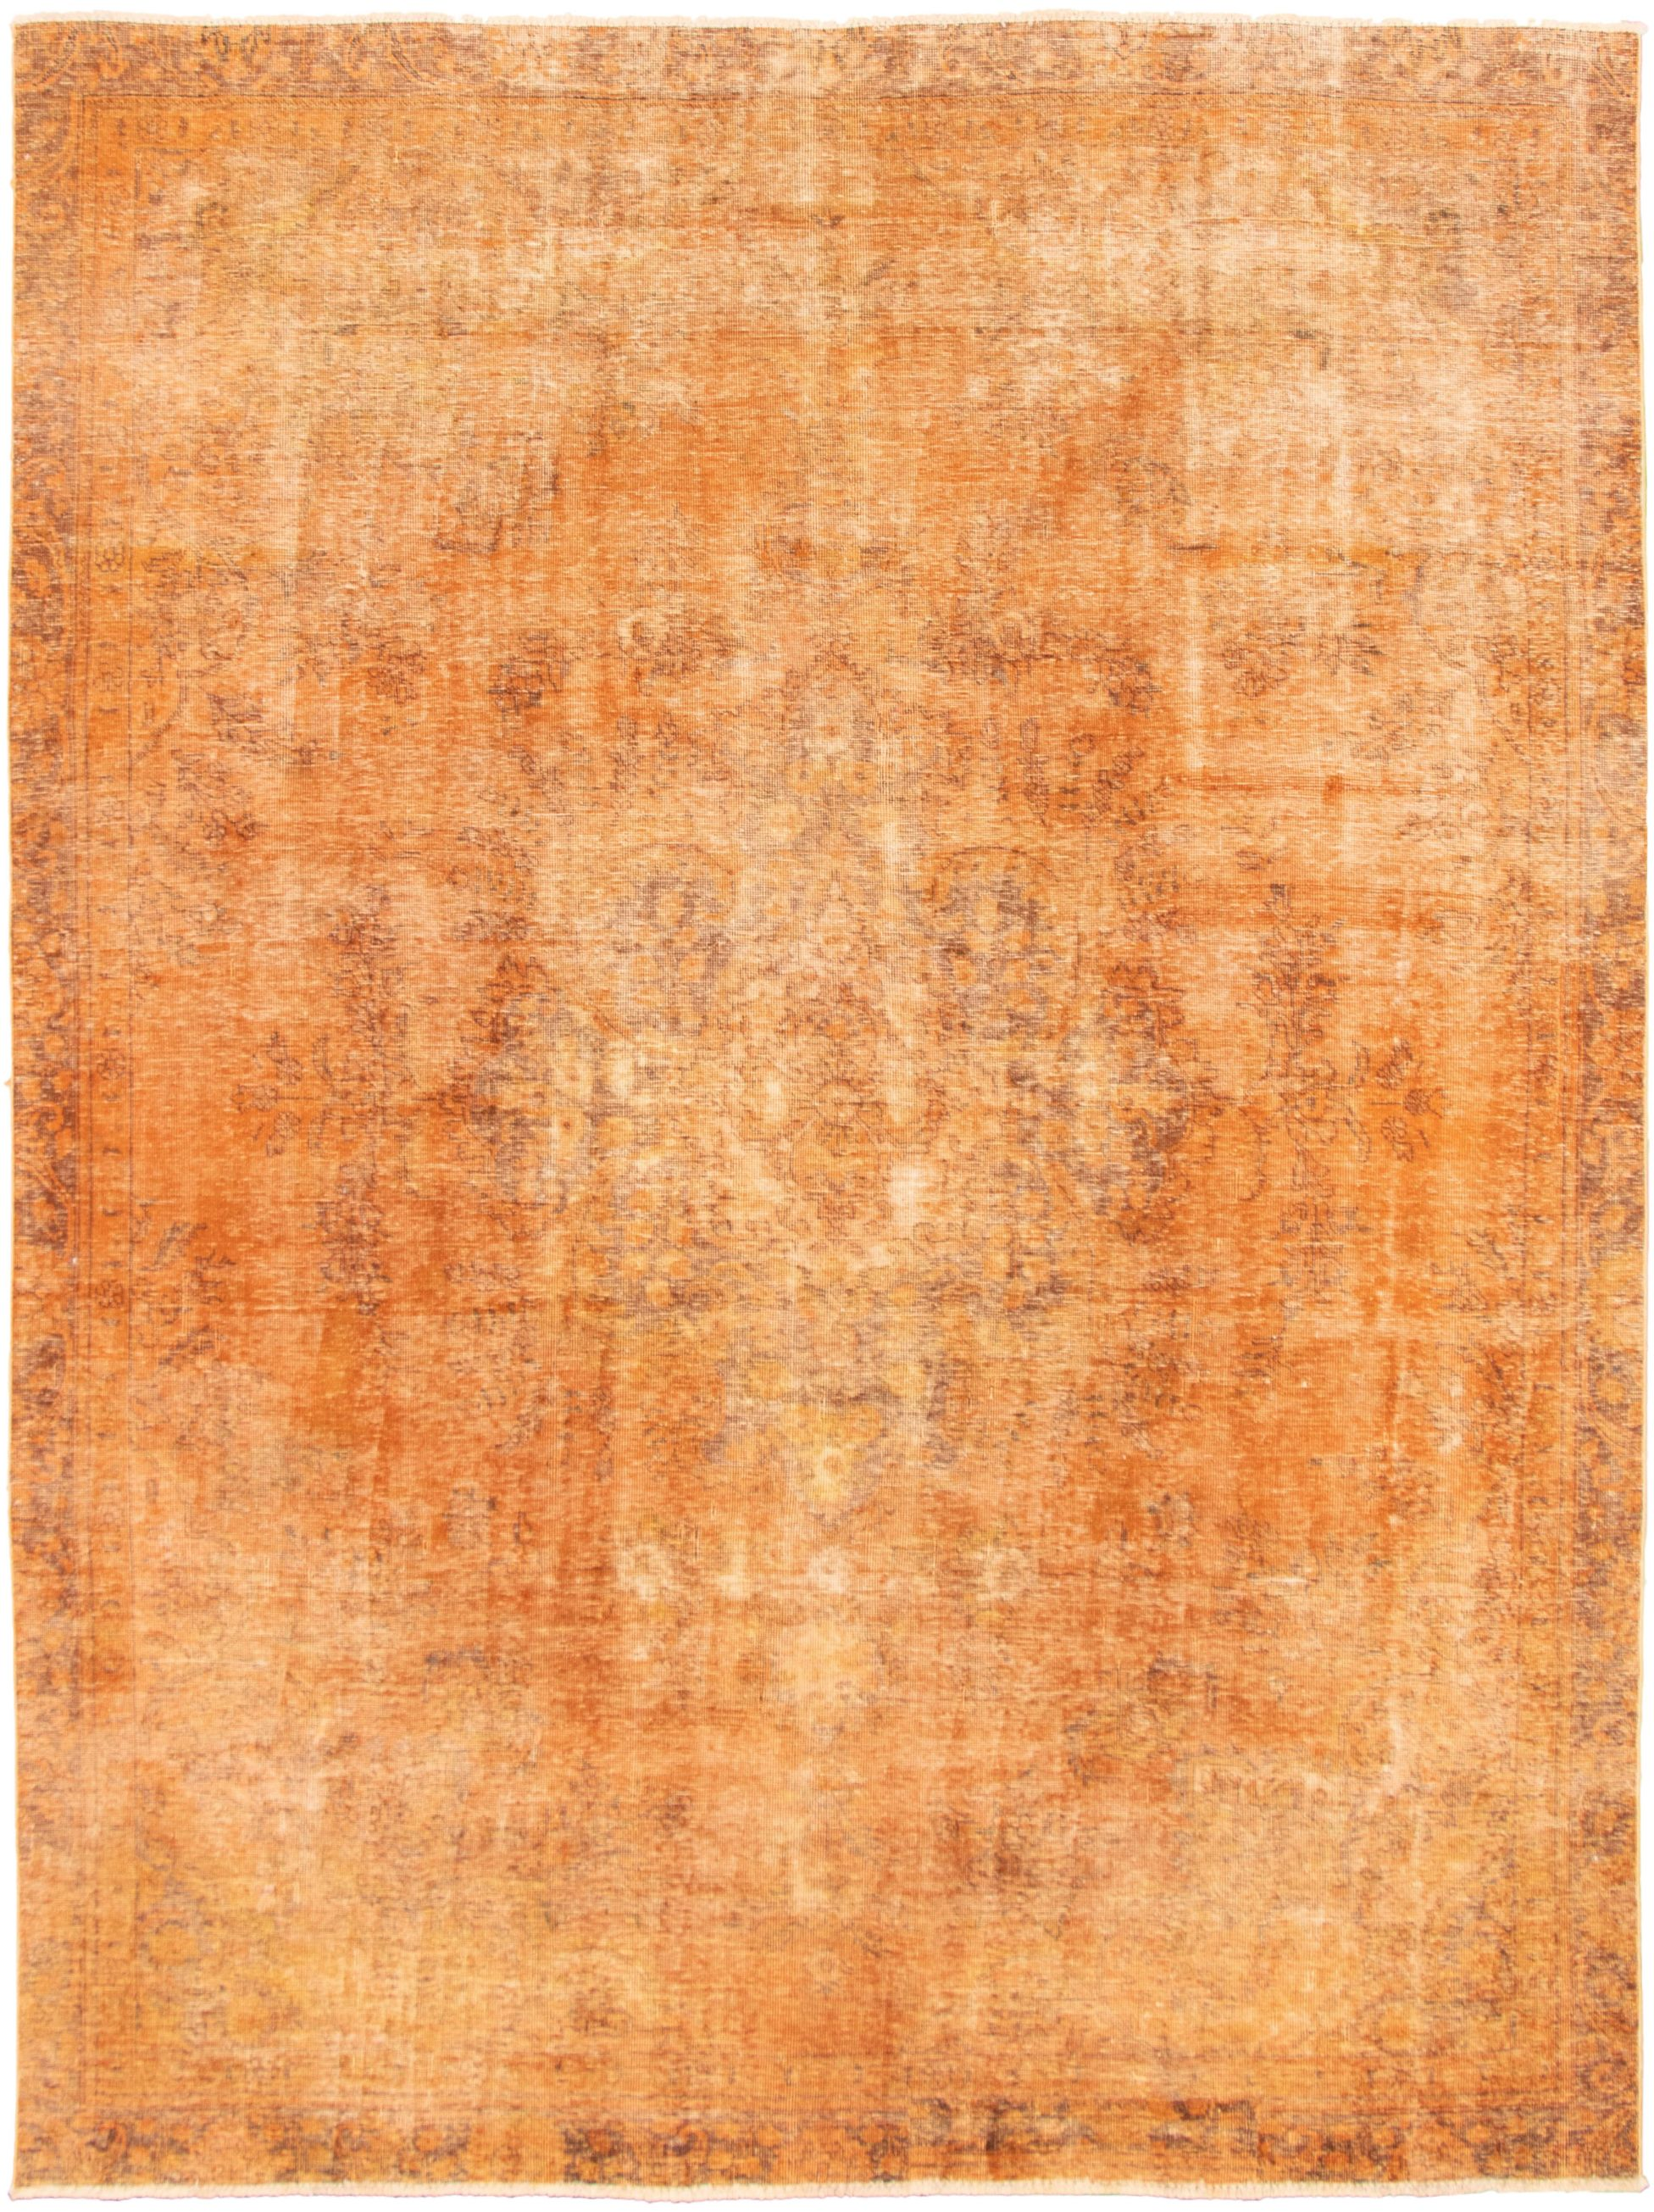 """Hand-knotted Color Transition Burnt Orange Wool Rug 8'6"""" x 11'6"""" Size: 8'6"""" x 11'6"""""""